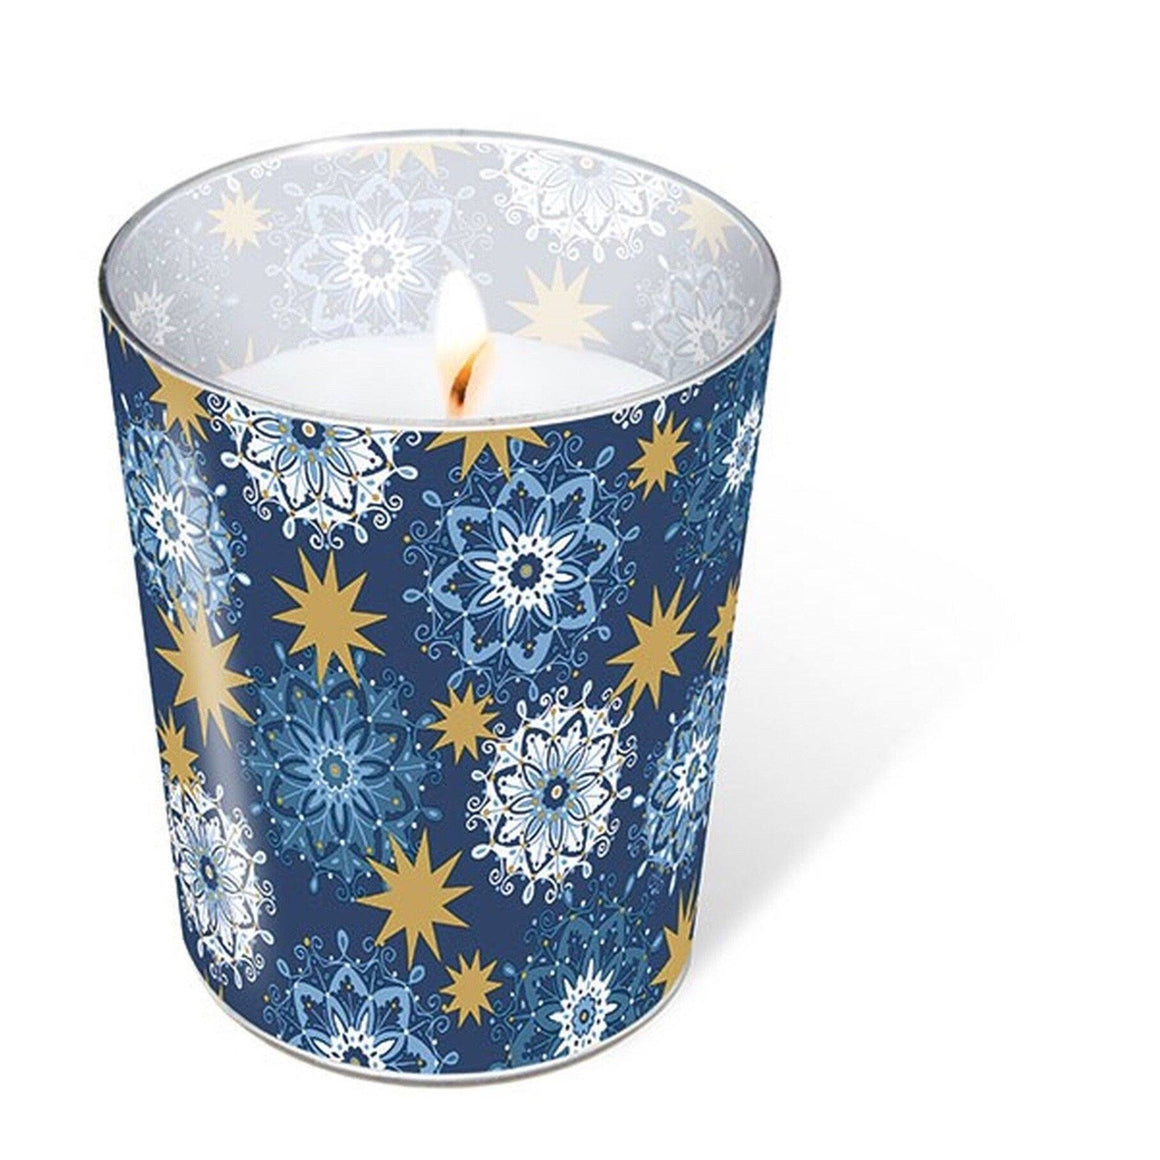 HOME - EUROPEAN GLASS CANDLE - FILIGREE STARS, HOME, Old Country Design - Bon + Co. Party Studio